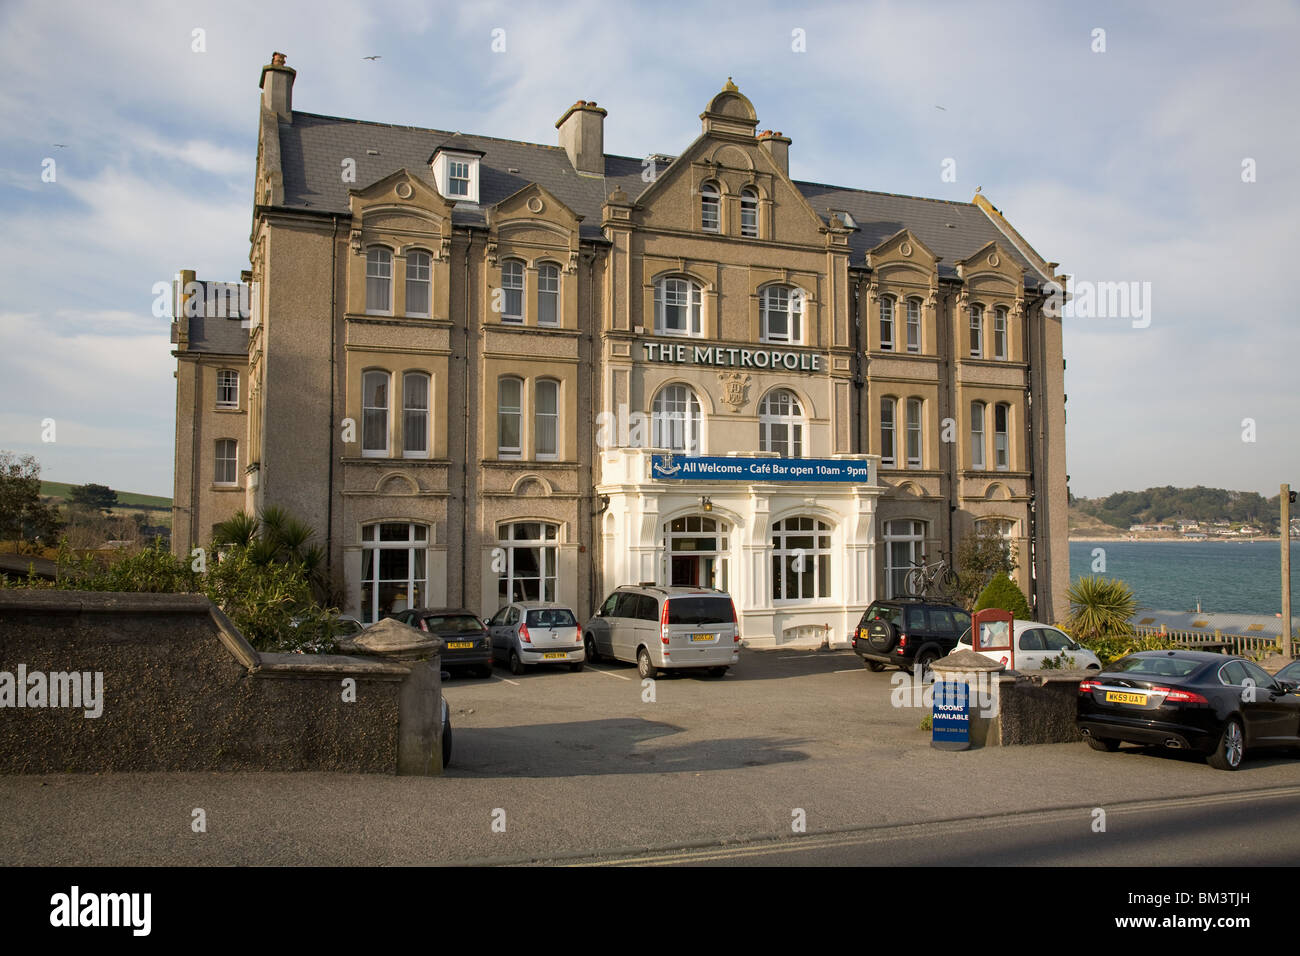 The Metropole Hotel in Padstow,Cornwall,England - Stock Image